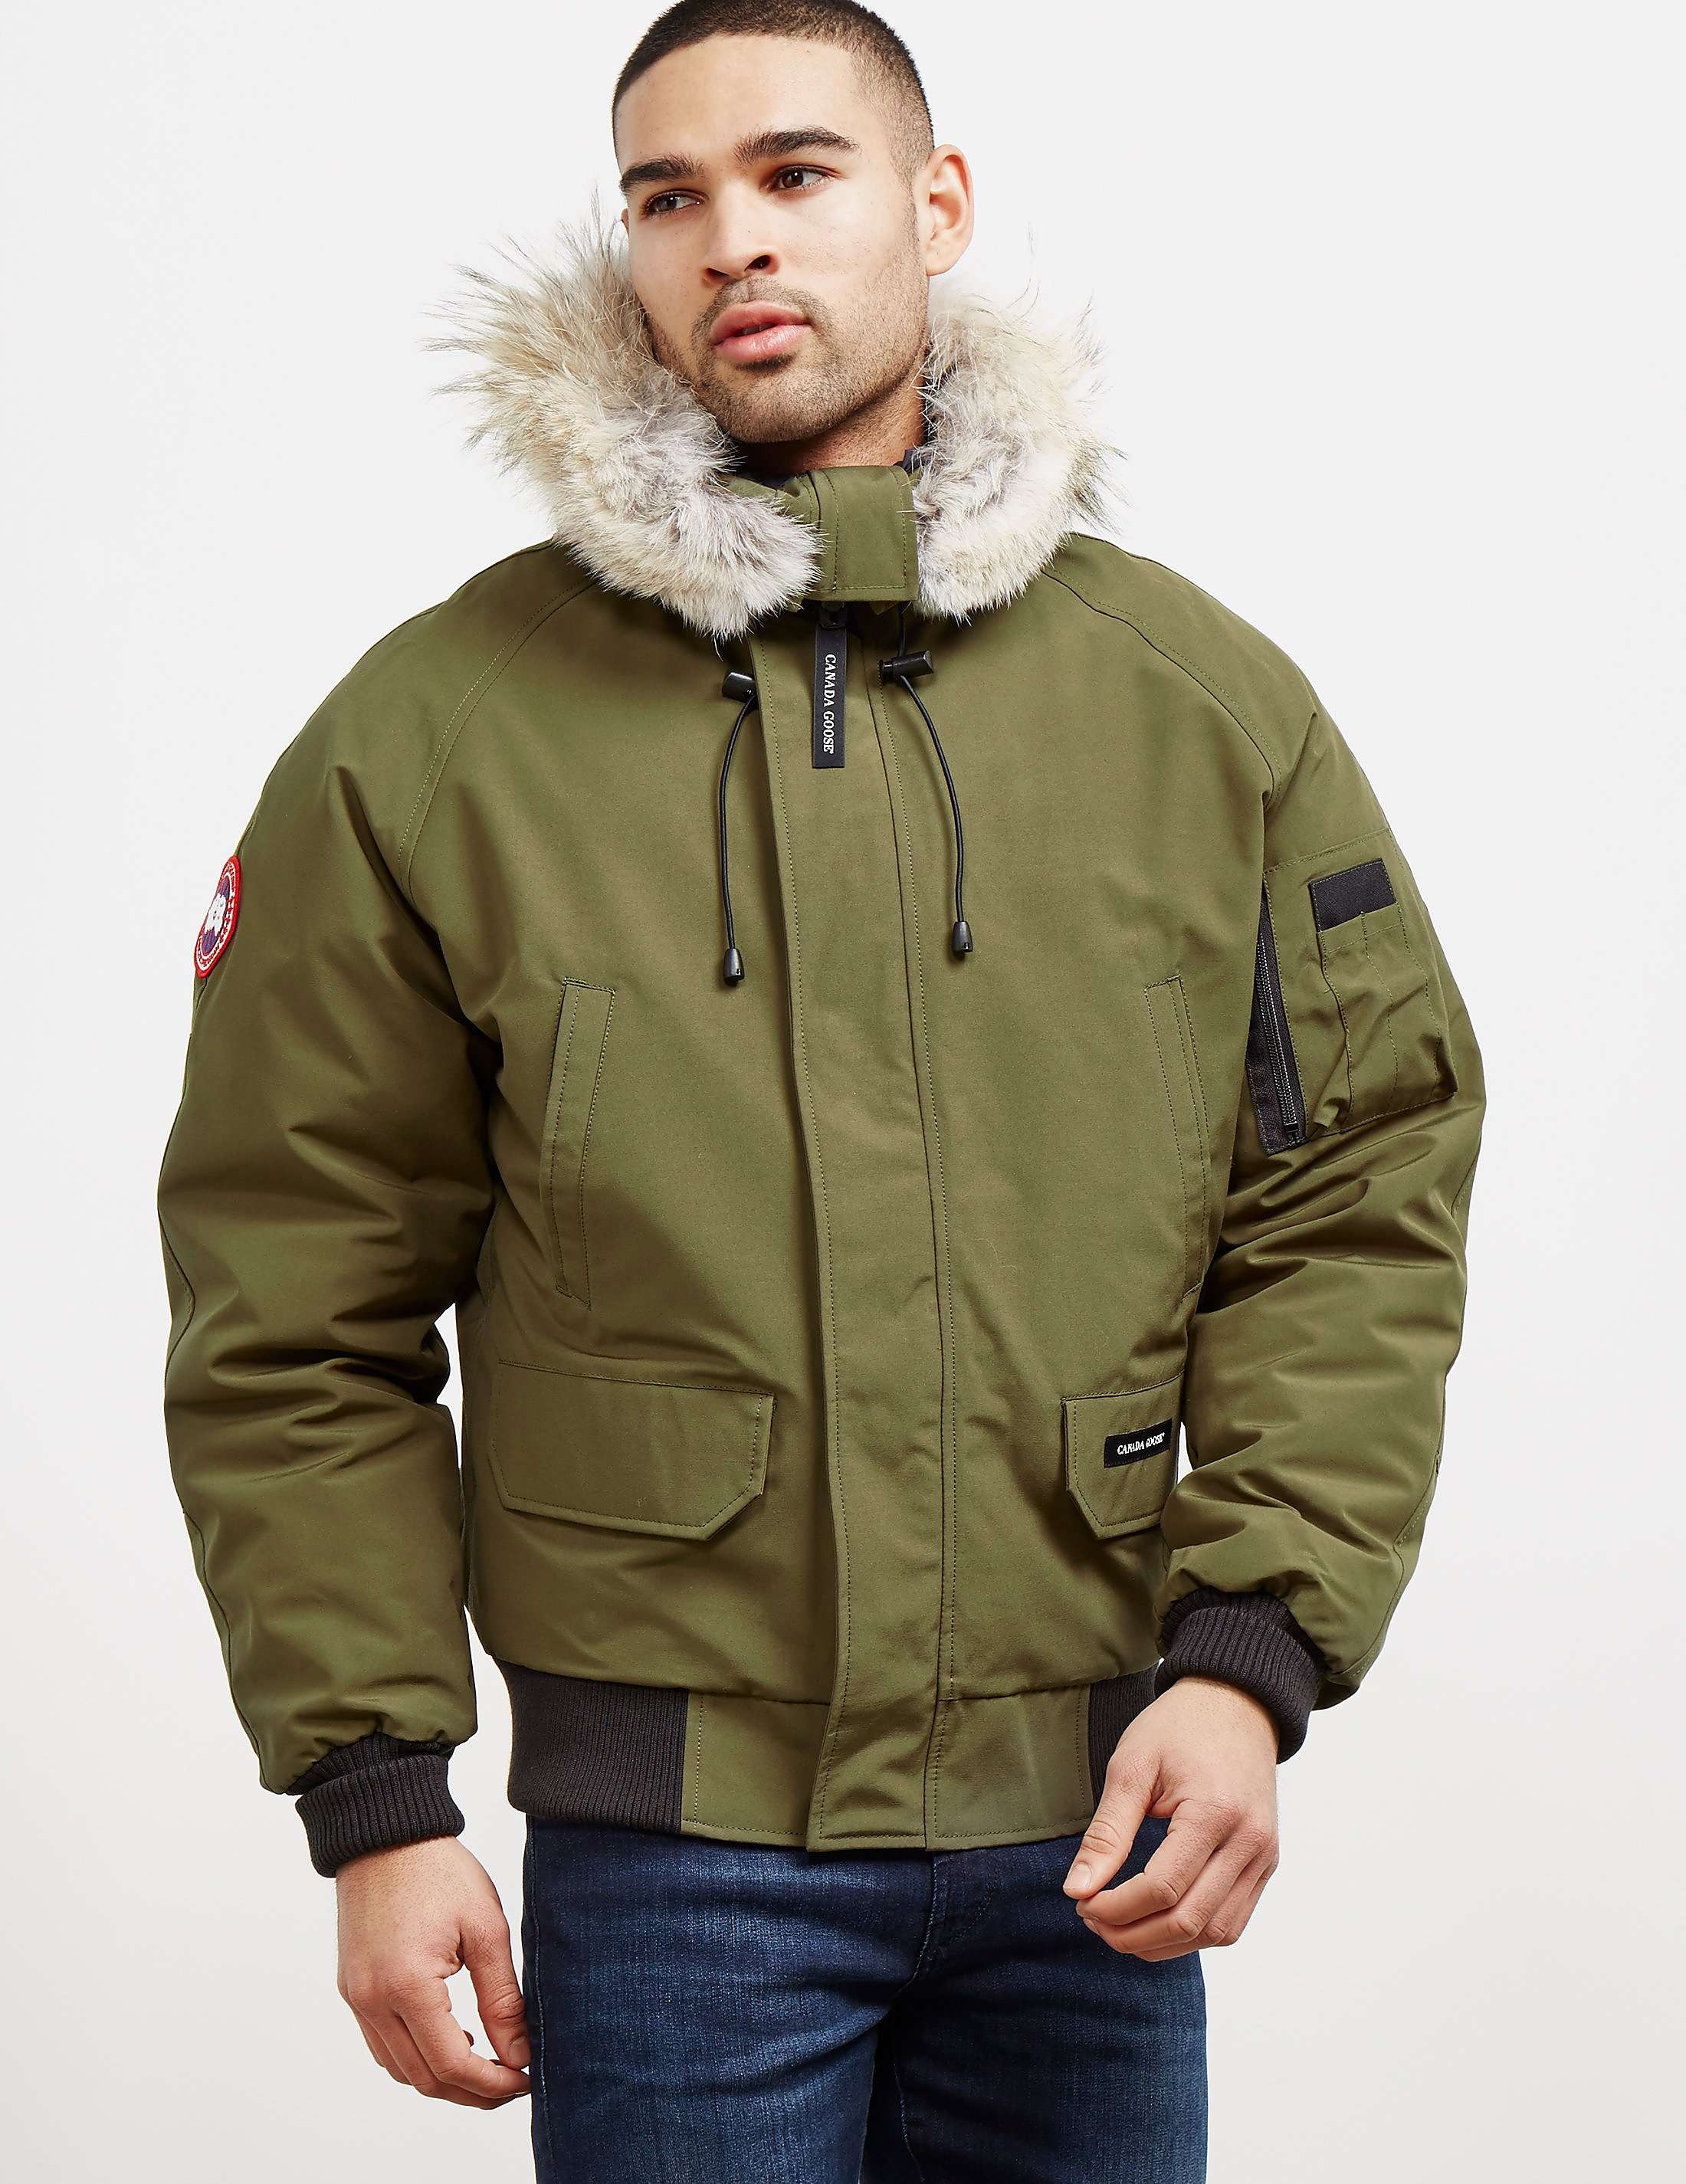 bomber jackets for men Classic men's bomber jackets are renewed with original fabrics and prints. Pick out your ideal piece in this season's trendy colors, from sporty styles to pieces with premium textures.